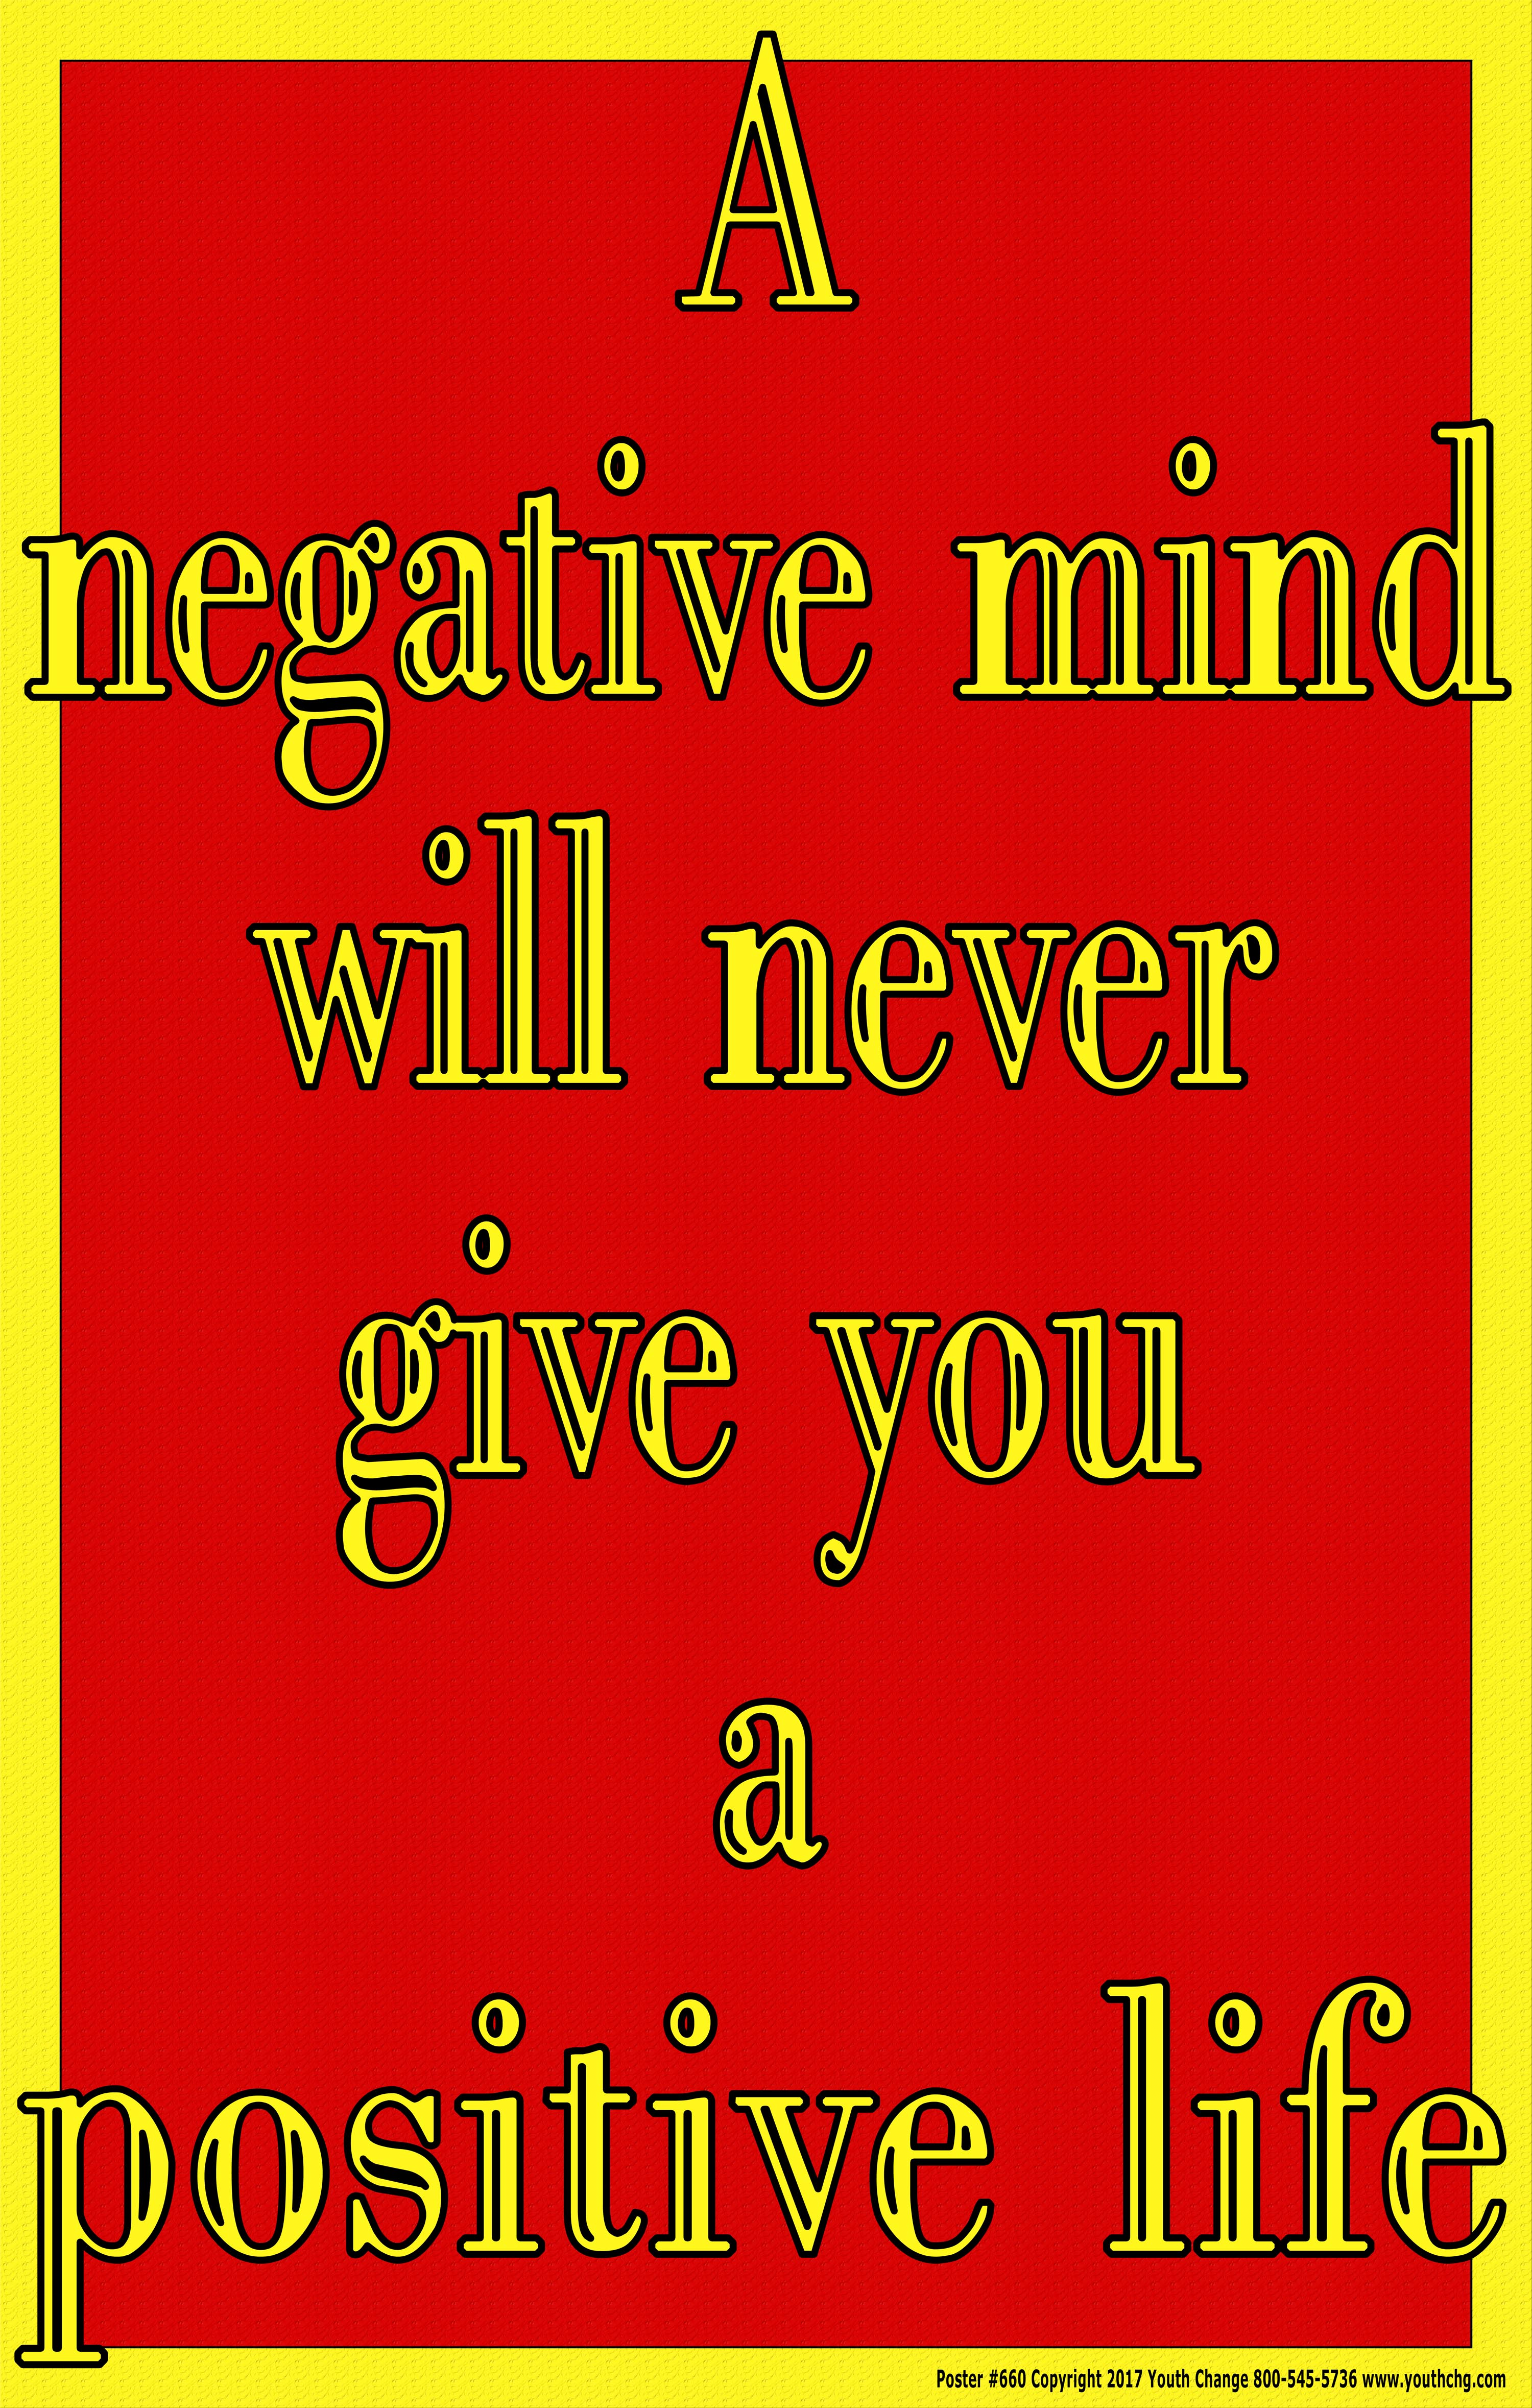 Positive Attitude Poster Reduces Student Negativity